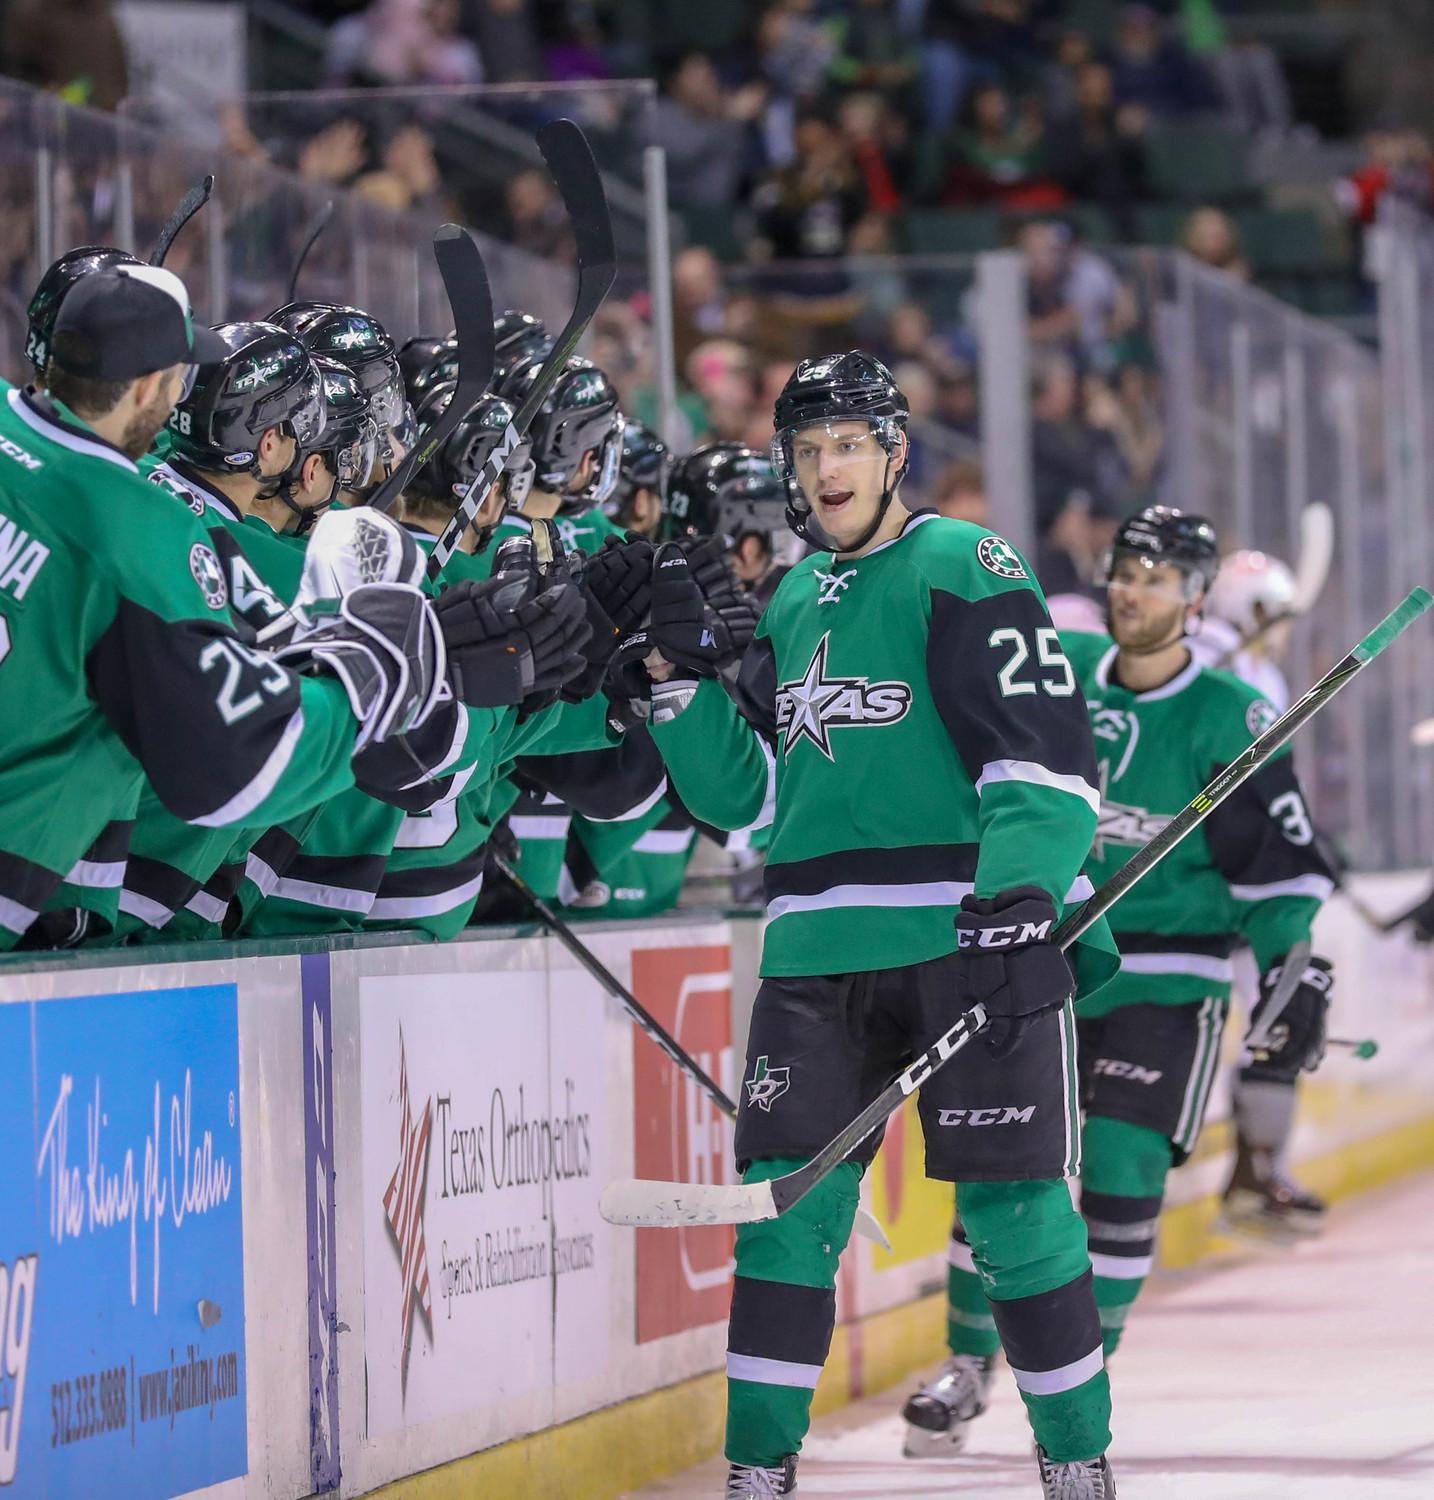 Denis Gurianov scored a hat trick in the third period, helping the Stars run away late in a 5-1 home win against the San Antonio Rampage on Saturday night.